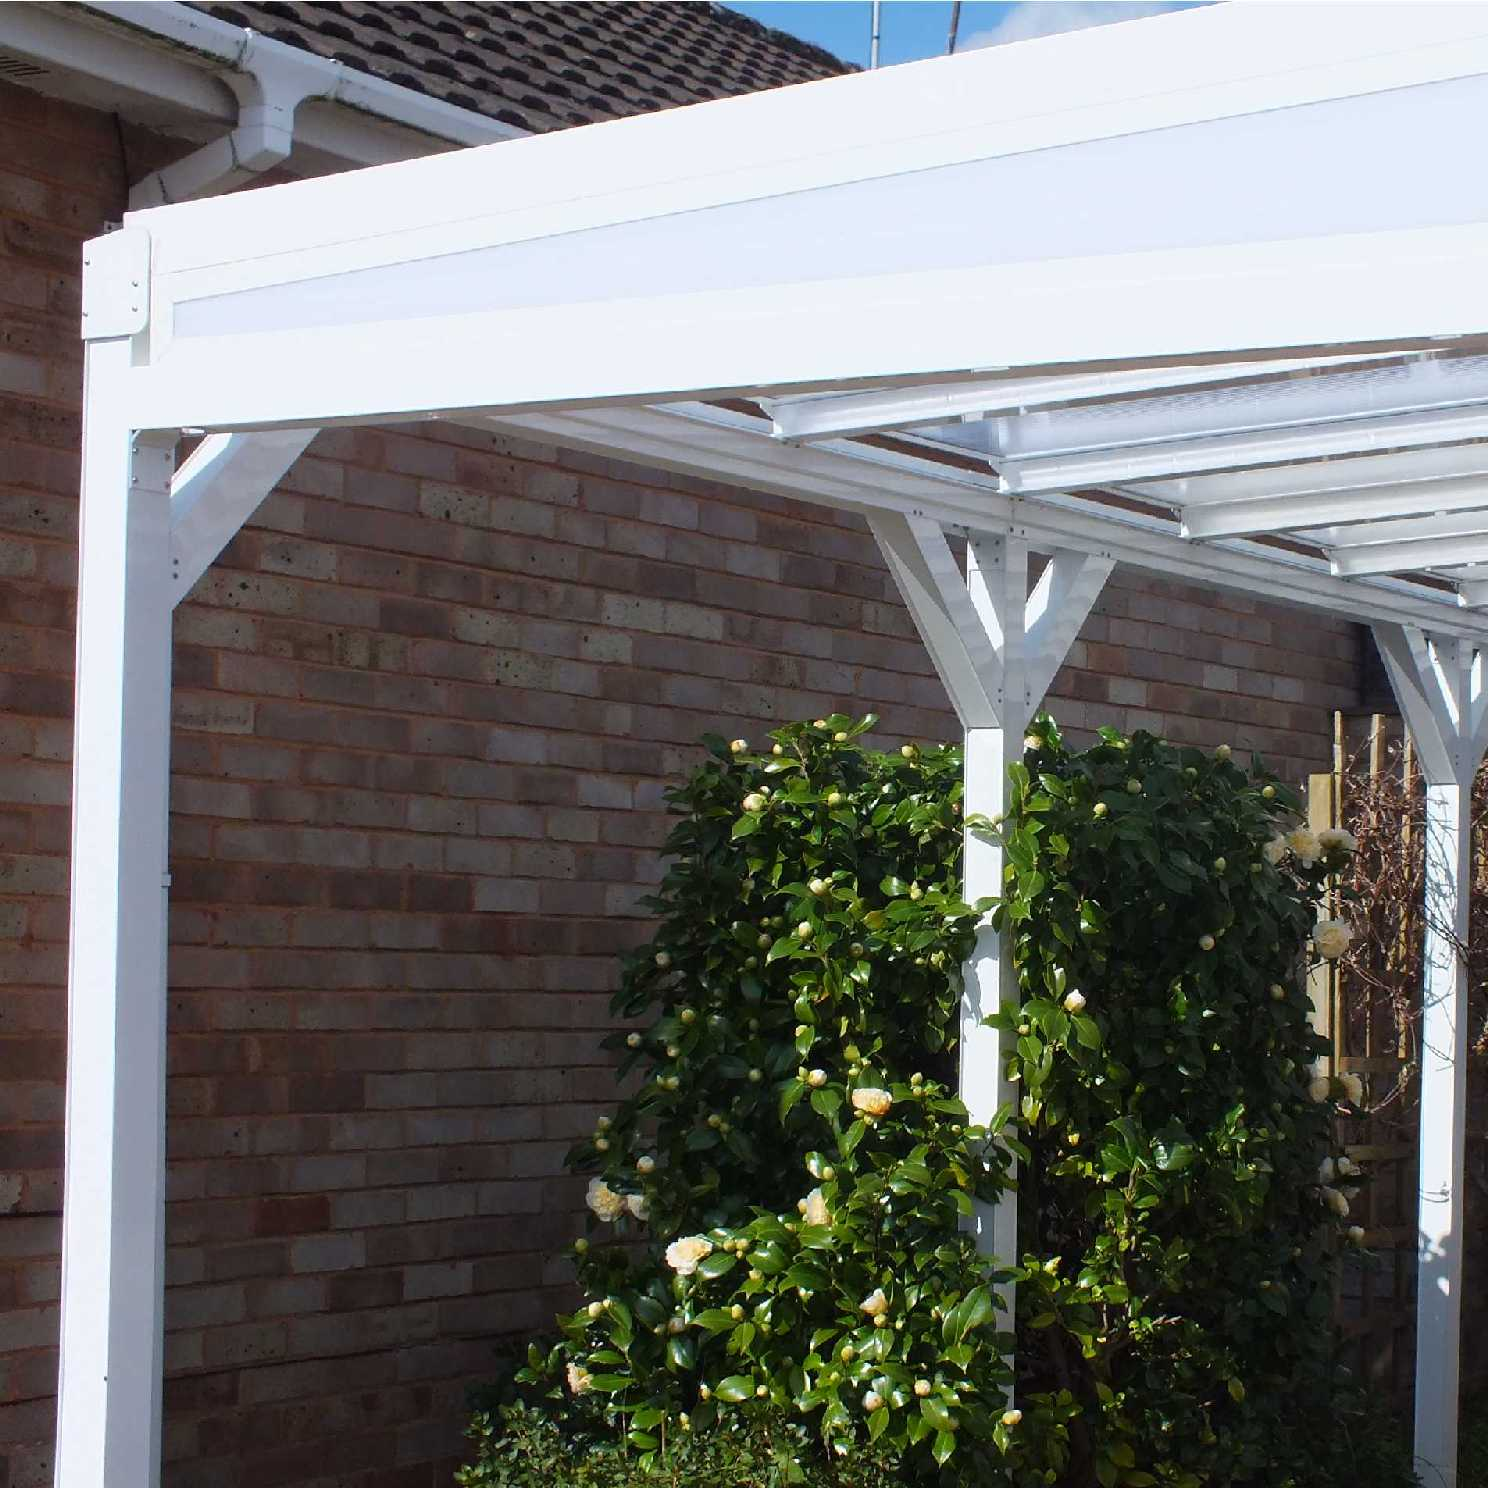 Omega Smart Lean-To Canopy with 16mm Polycarbonate Glazing - 6.0m (W) x 4.0m (P), (3) Supporting Posts from Omega Build